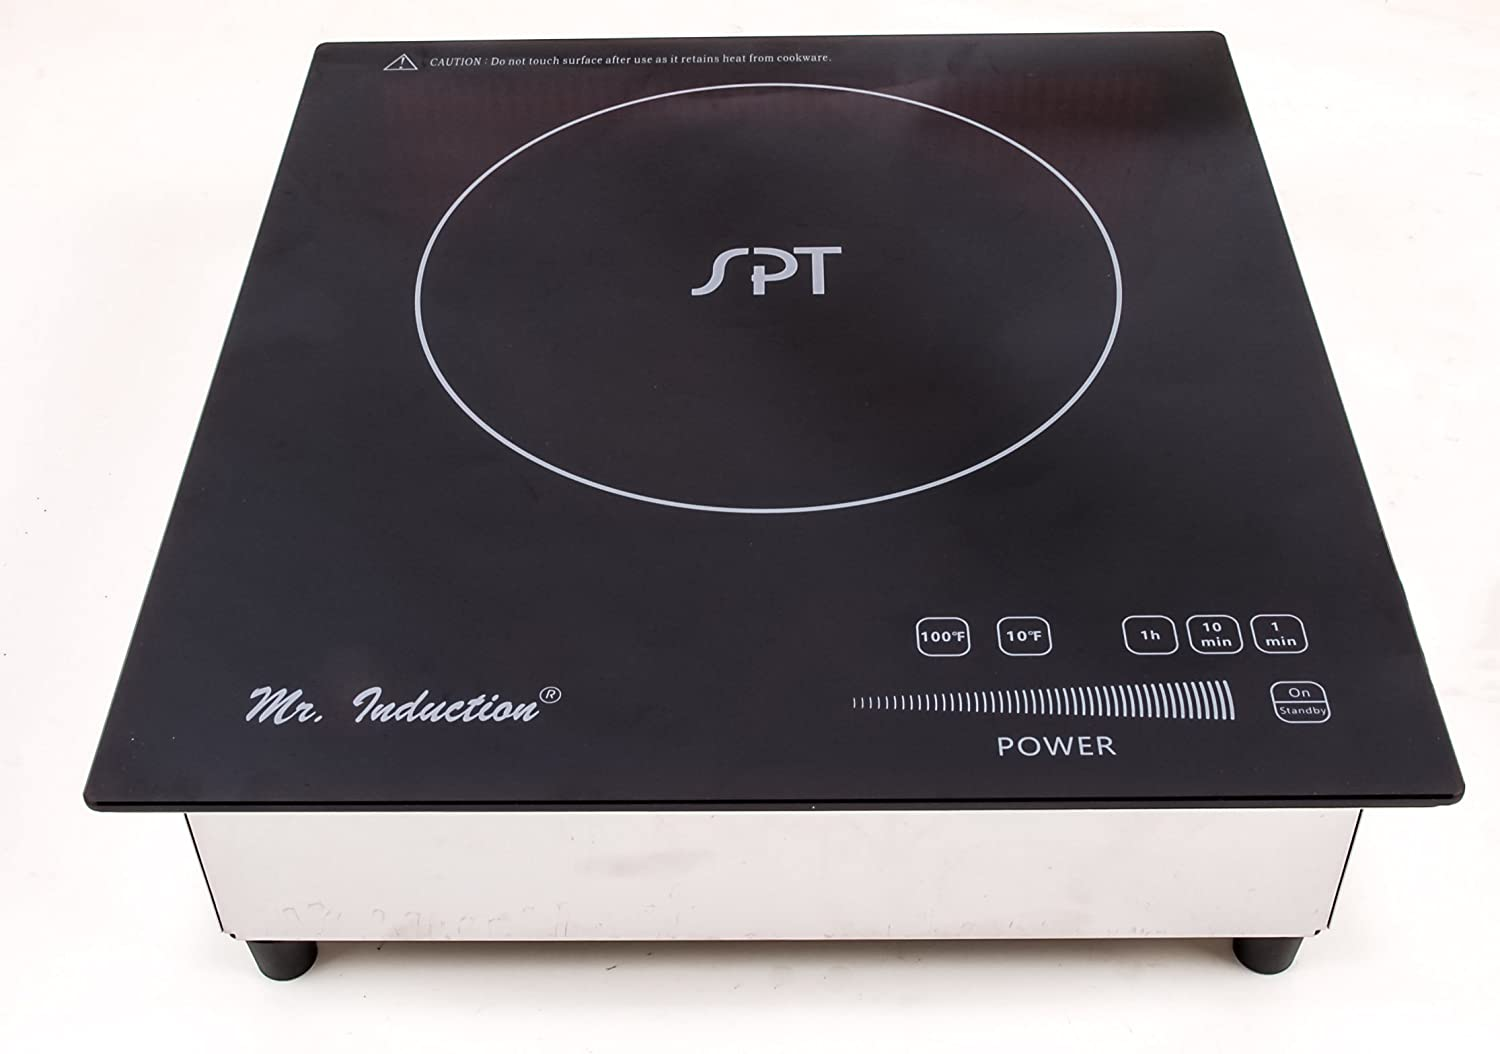 SR-187RT COMMERICAL 1800W BUILT-IN INDUCTION COOKER